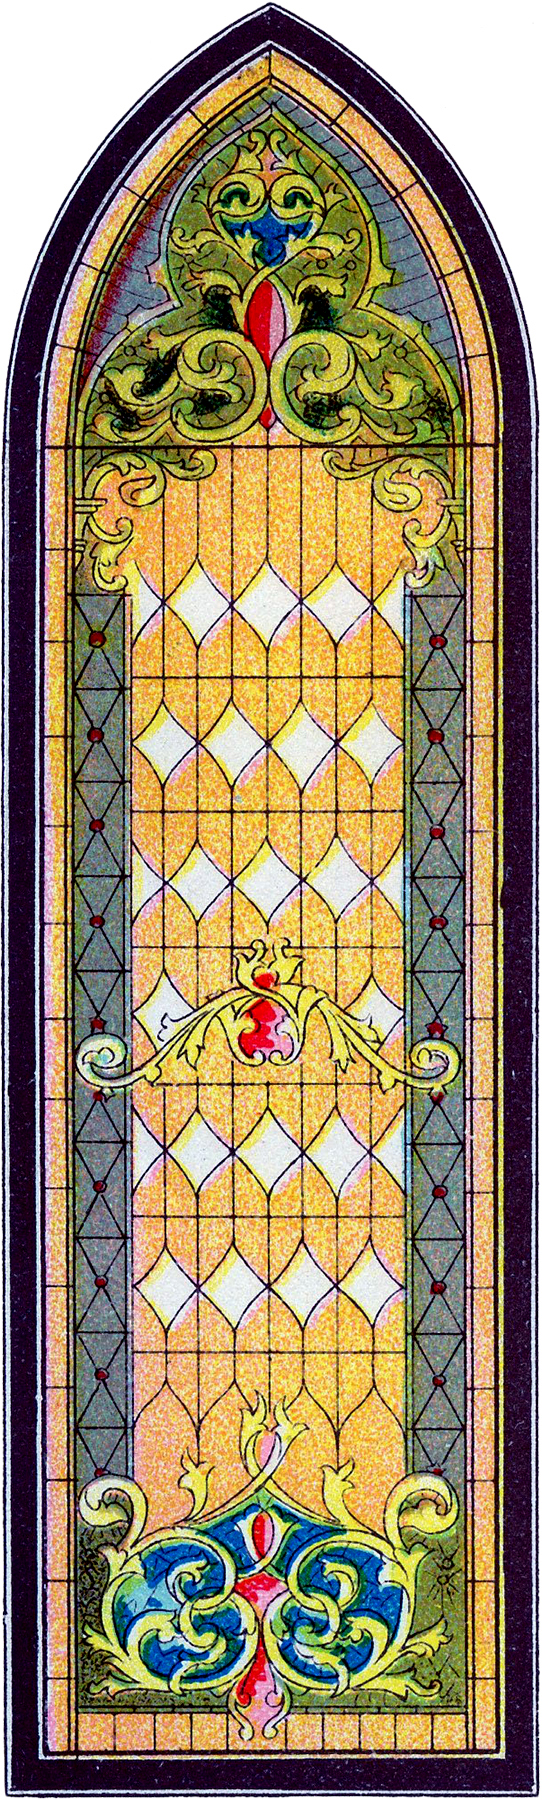 Glass Window Clip Art : Vintage stained glass church window image the graphics